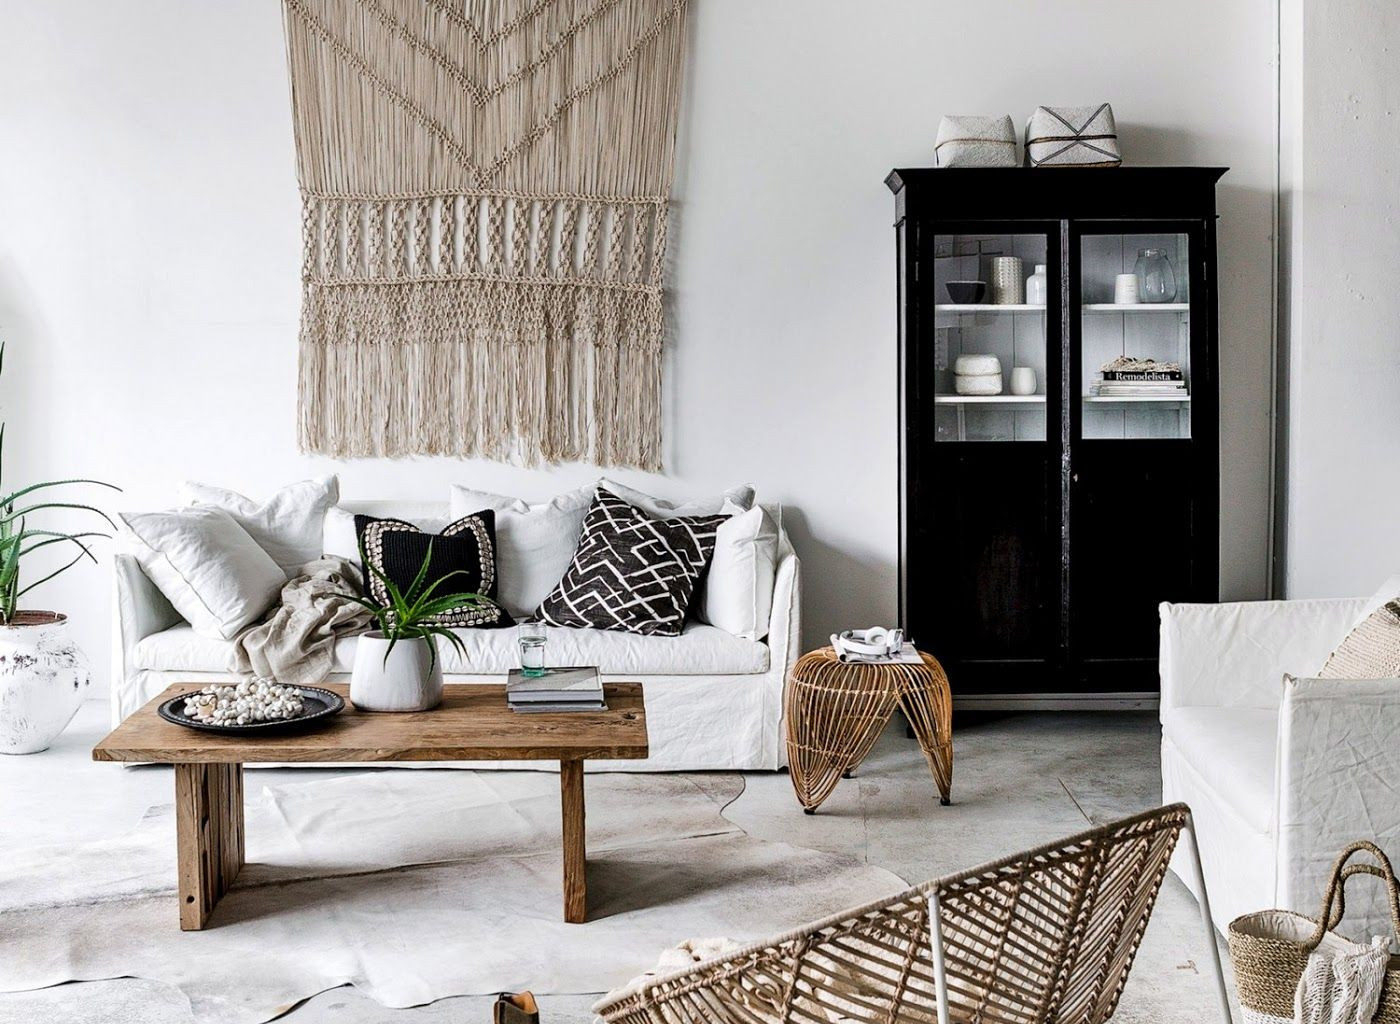 Tapestry Ideas For Decorating Your Home – Lazy Loft Intended For Newest Blended Fabric Wall Hangings (View 14 of 20)